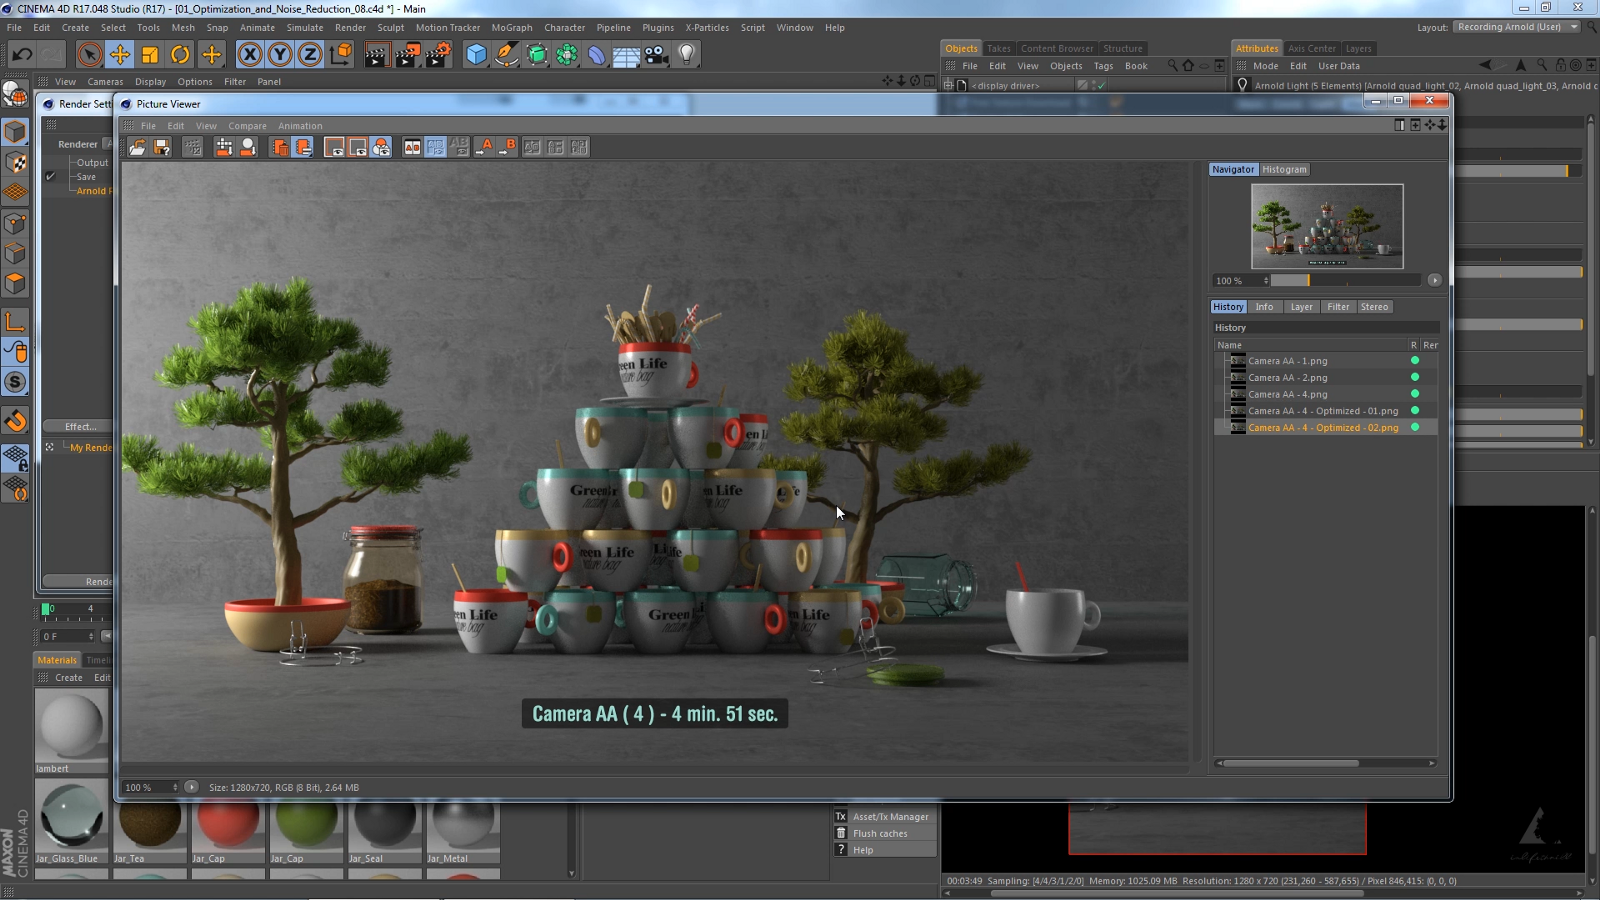 Cinema 4d Pros Cons Quirks And Links Imeshup Medium